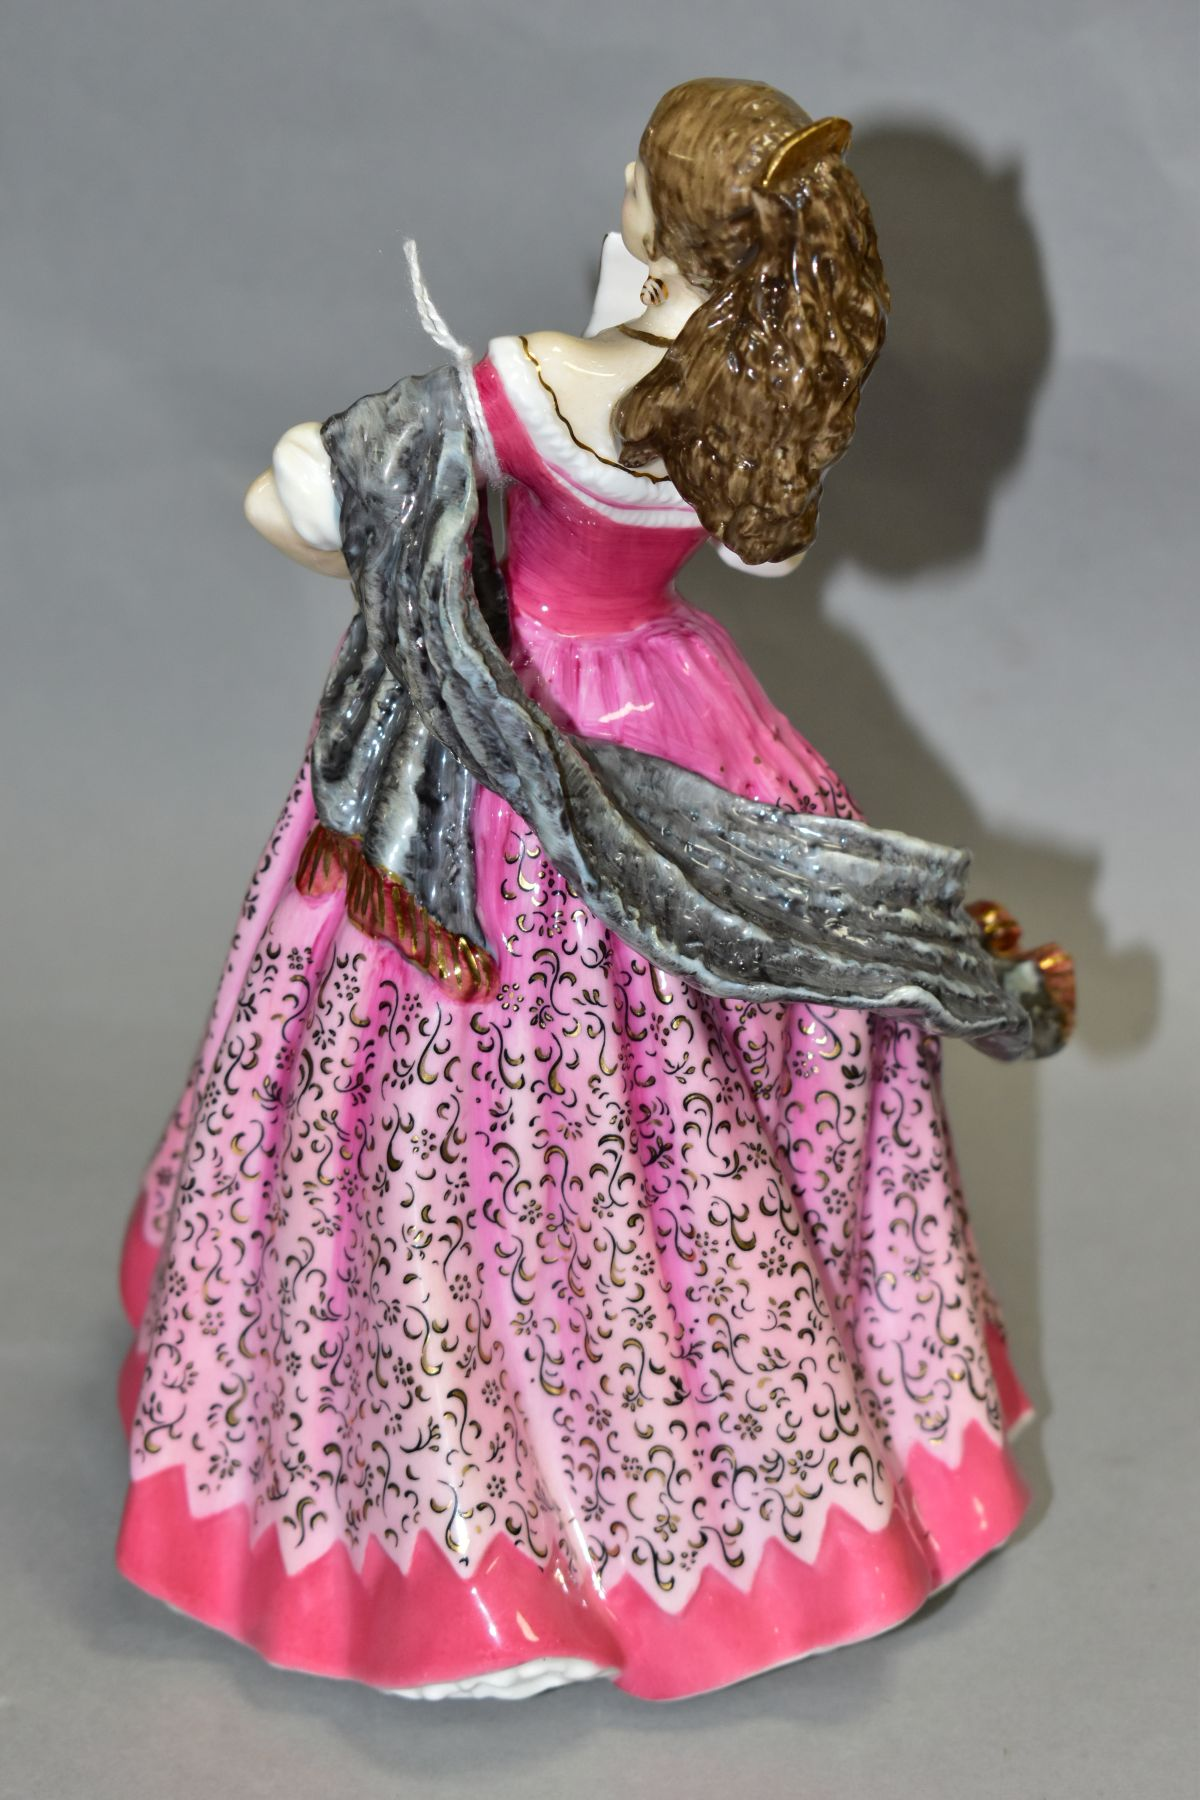 A LIMITED EDITION ROYAL DOULTON FIGURE, 'Carmen' HN3993 from Opera Heroines Collection sculptured by - Image 2 of 5